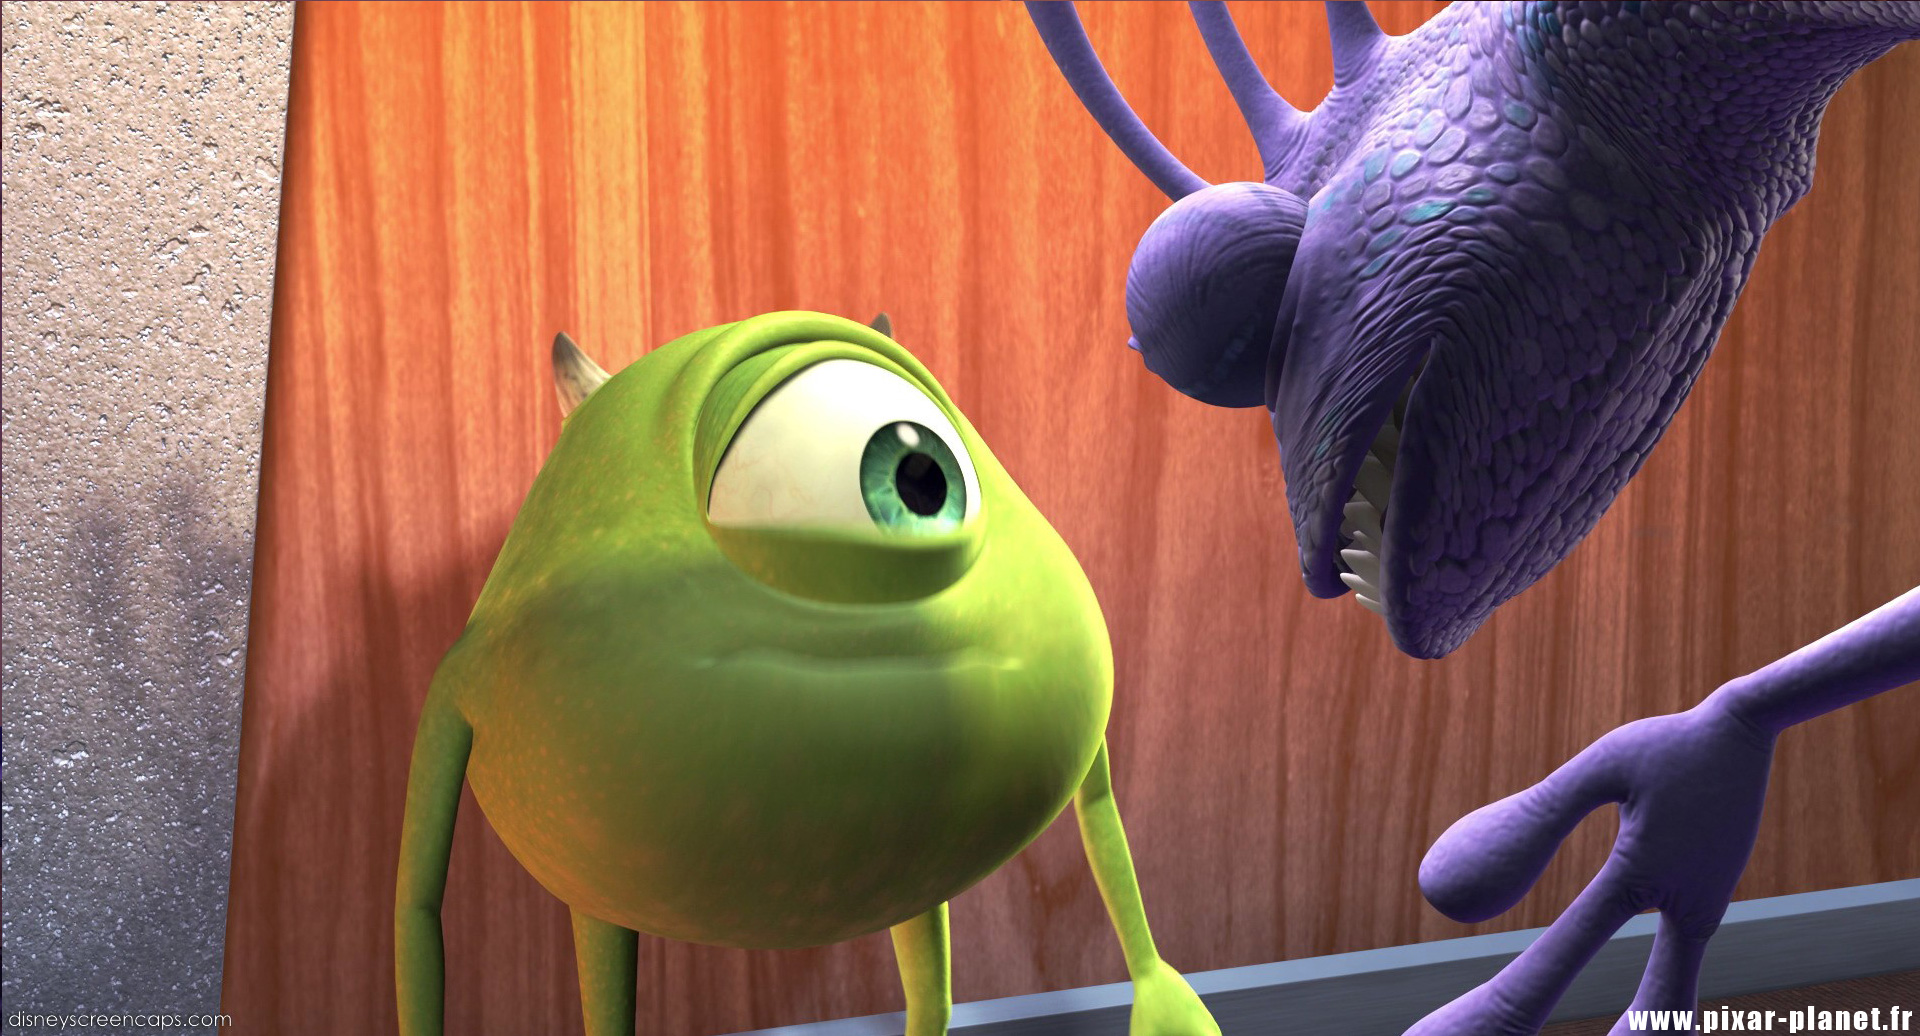 Quotes From Monsters Inc Pixar Planet Fr